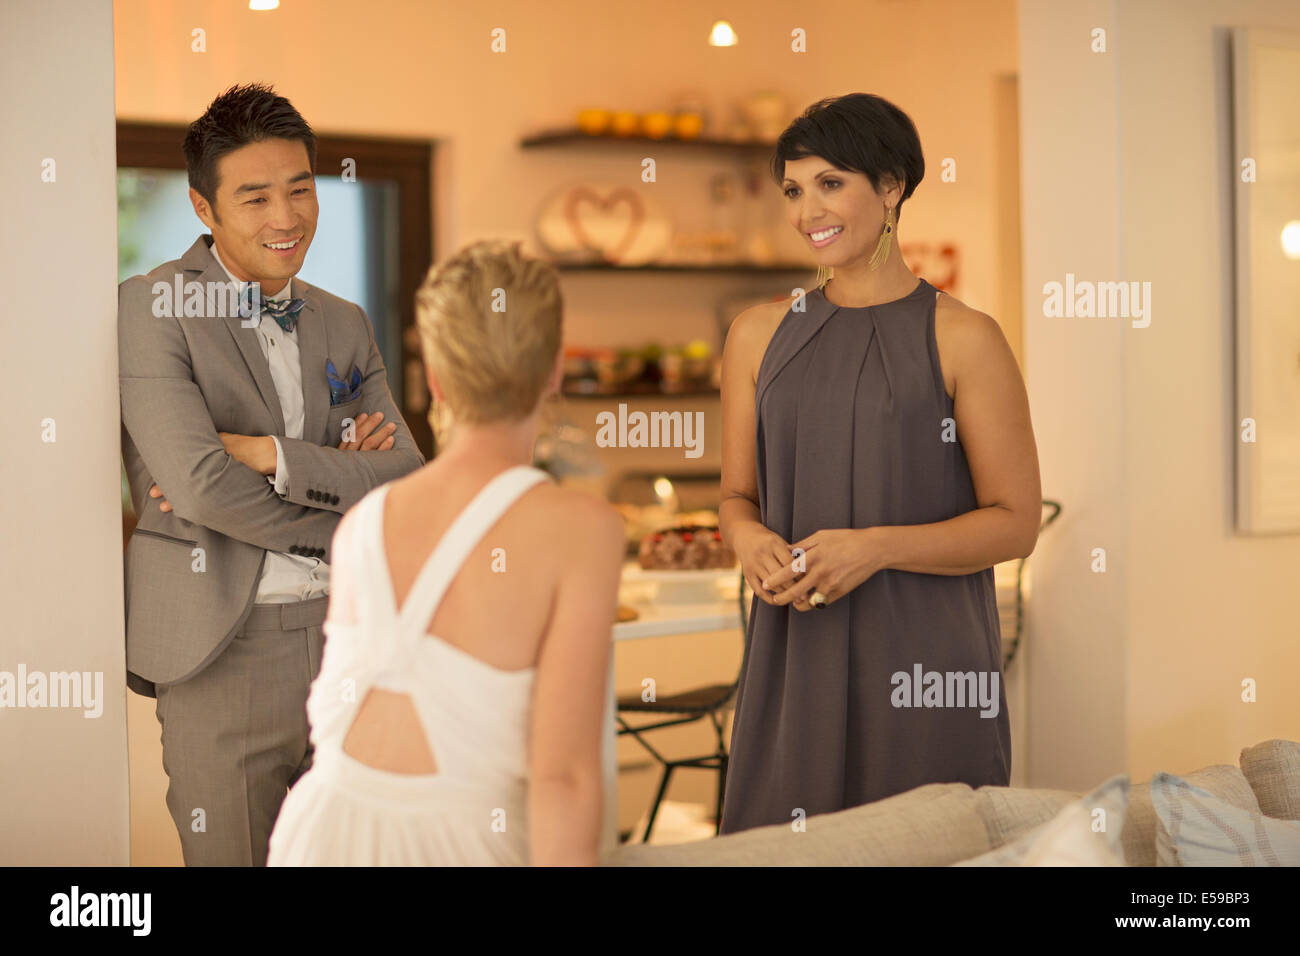 Friends talking at party - Stock Image